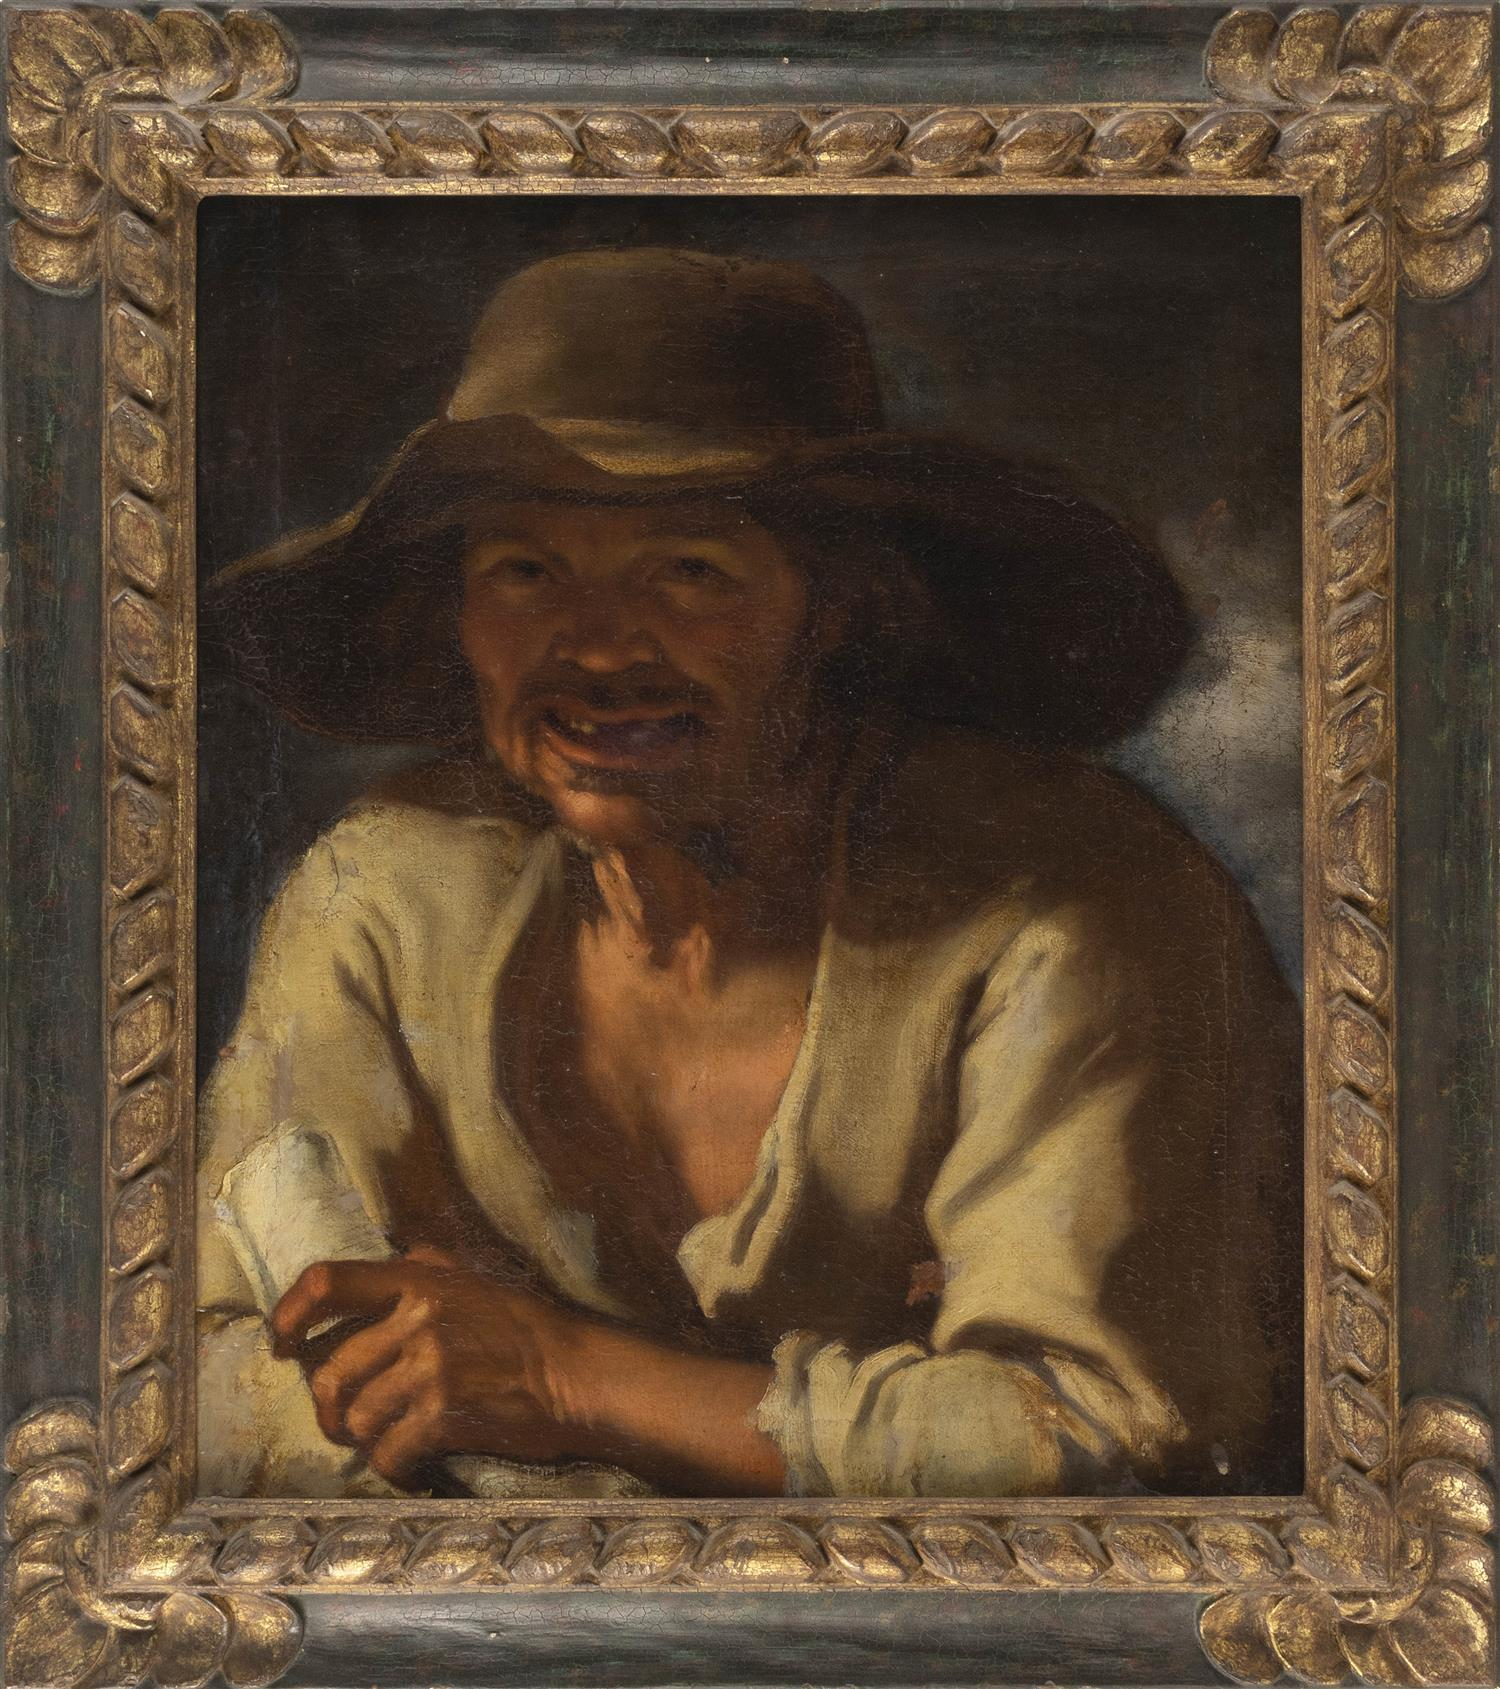 "SPANISH SCHOOL, 18th Century, Portrait of a peasant., Oil on canvas, 24"" x 20"". Framed 32"" x 27""."